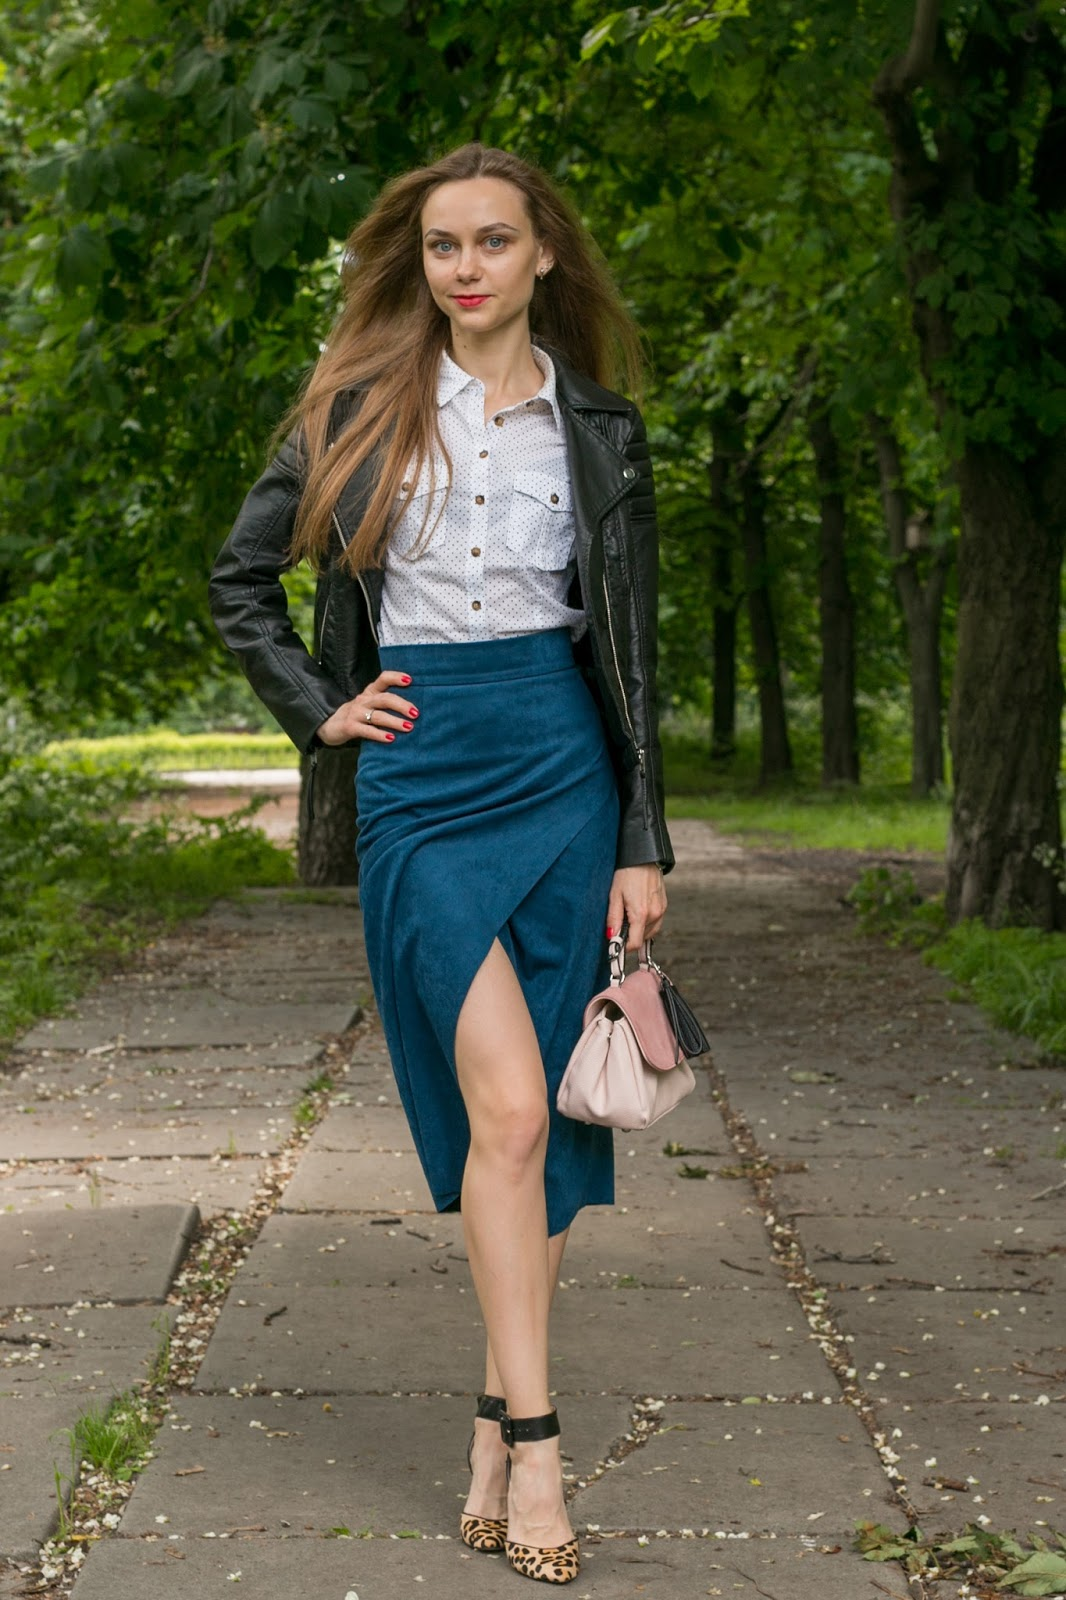 LookOn, look, lookbook, outfit, outfits, ootd, wiw, wiwt, style, fashion, fashion blog, fashion blogger, inspiration, asymmetric skirt, heeled sandals, leather jacket, shirt, heels, bag, wiw, streetstyle, fashionblogger, styleblogger, spring outfit, summer outfit